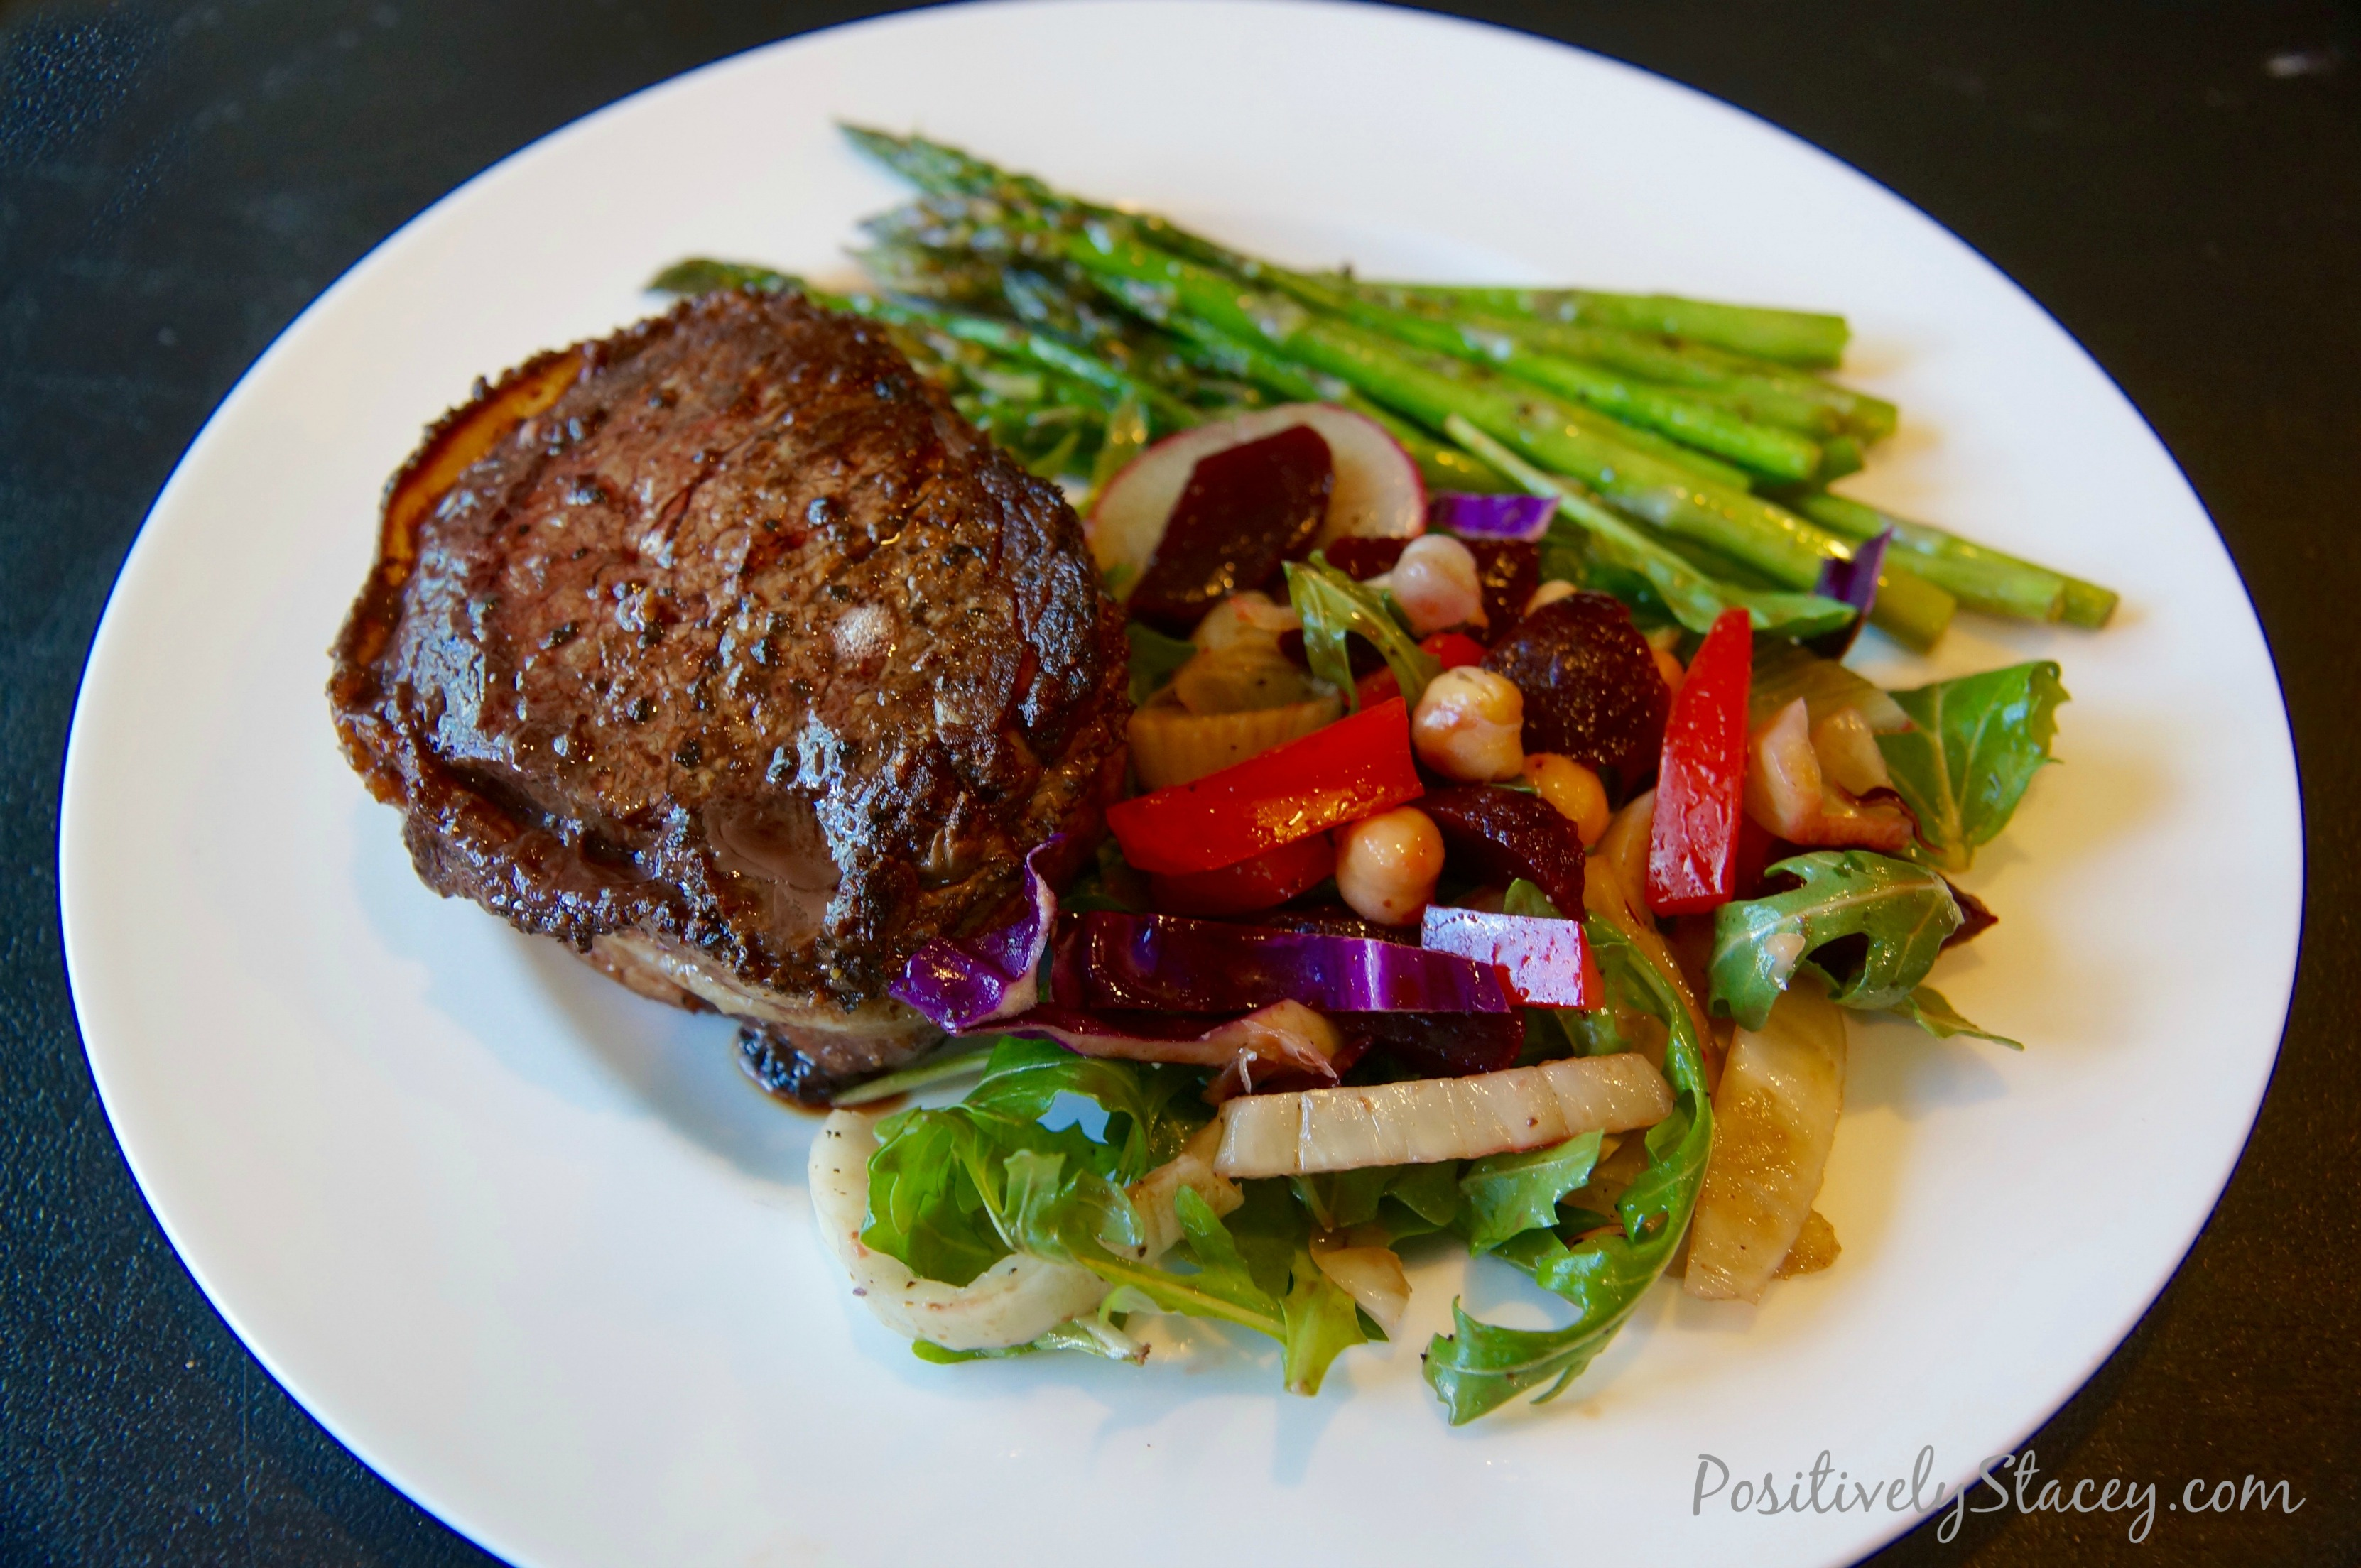 Bacon Wrapped Filet Mignon and Salad